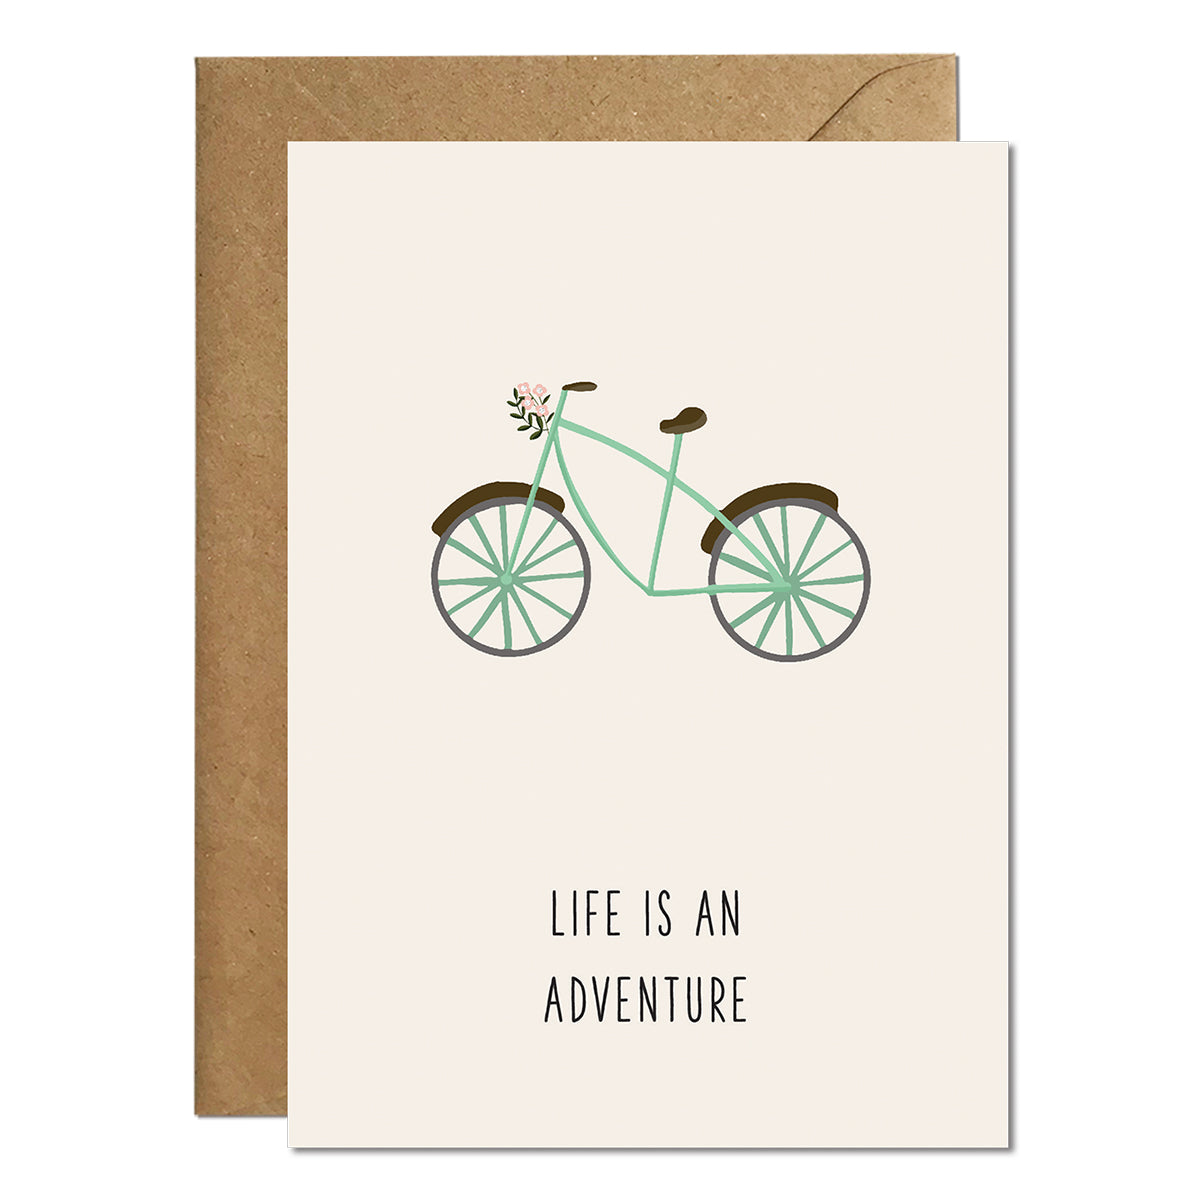 A greeting card with an illustration of a green bike and a greeting that reads 'life is an adventure'